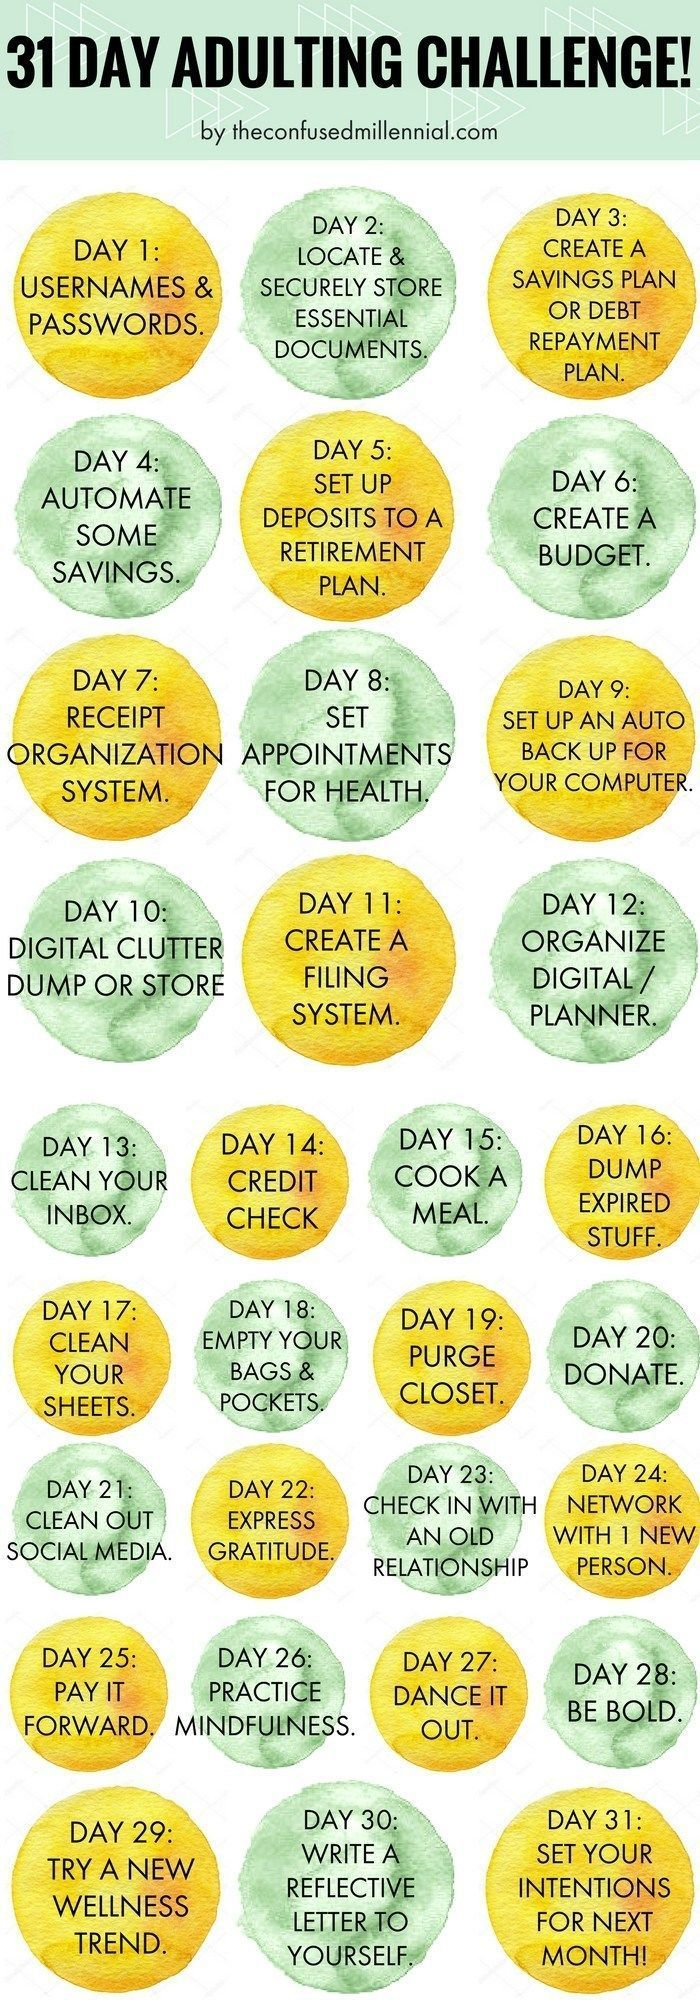 Guide To Adulting: 31 Day Adulting Challenge + Checklist